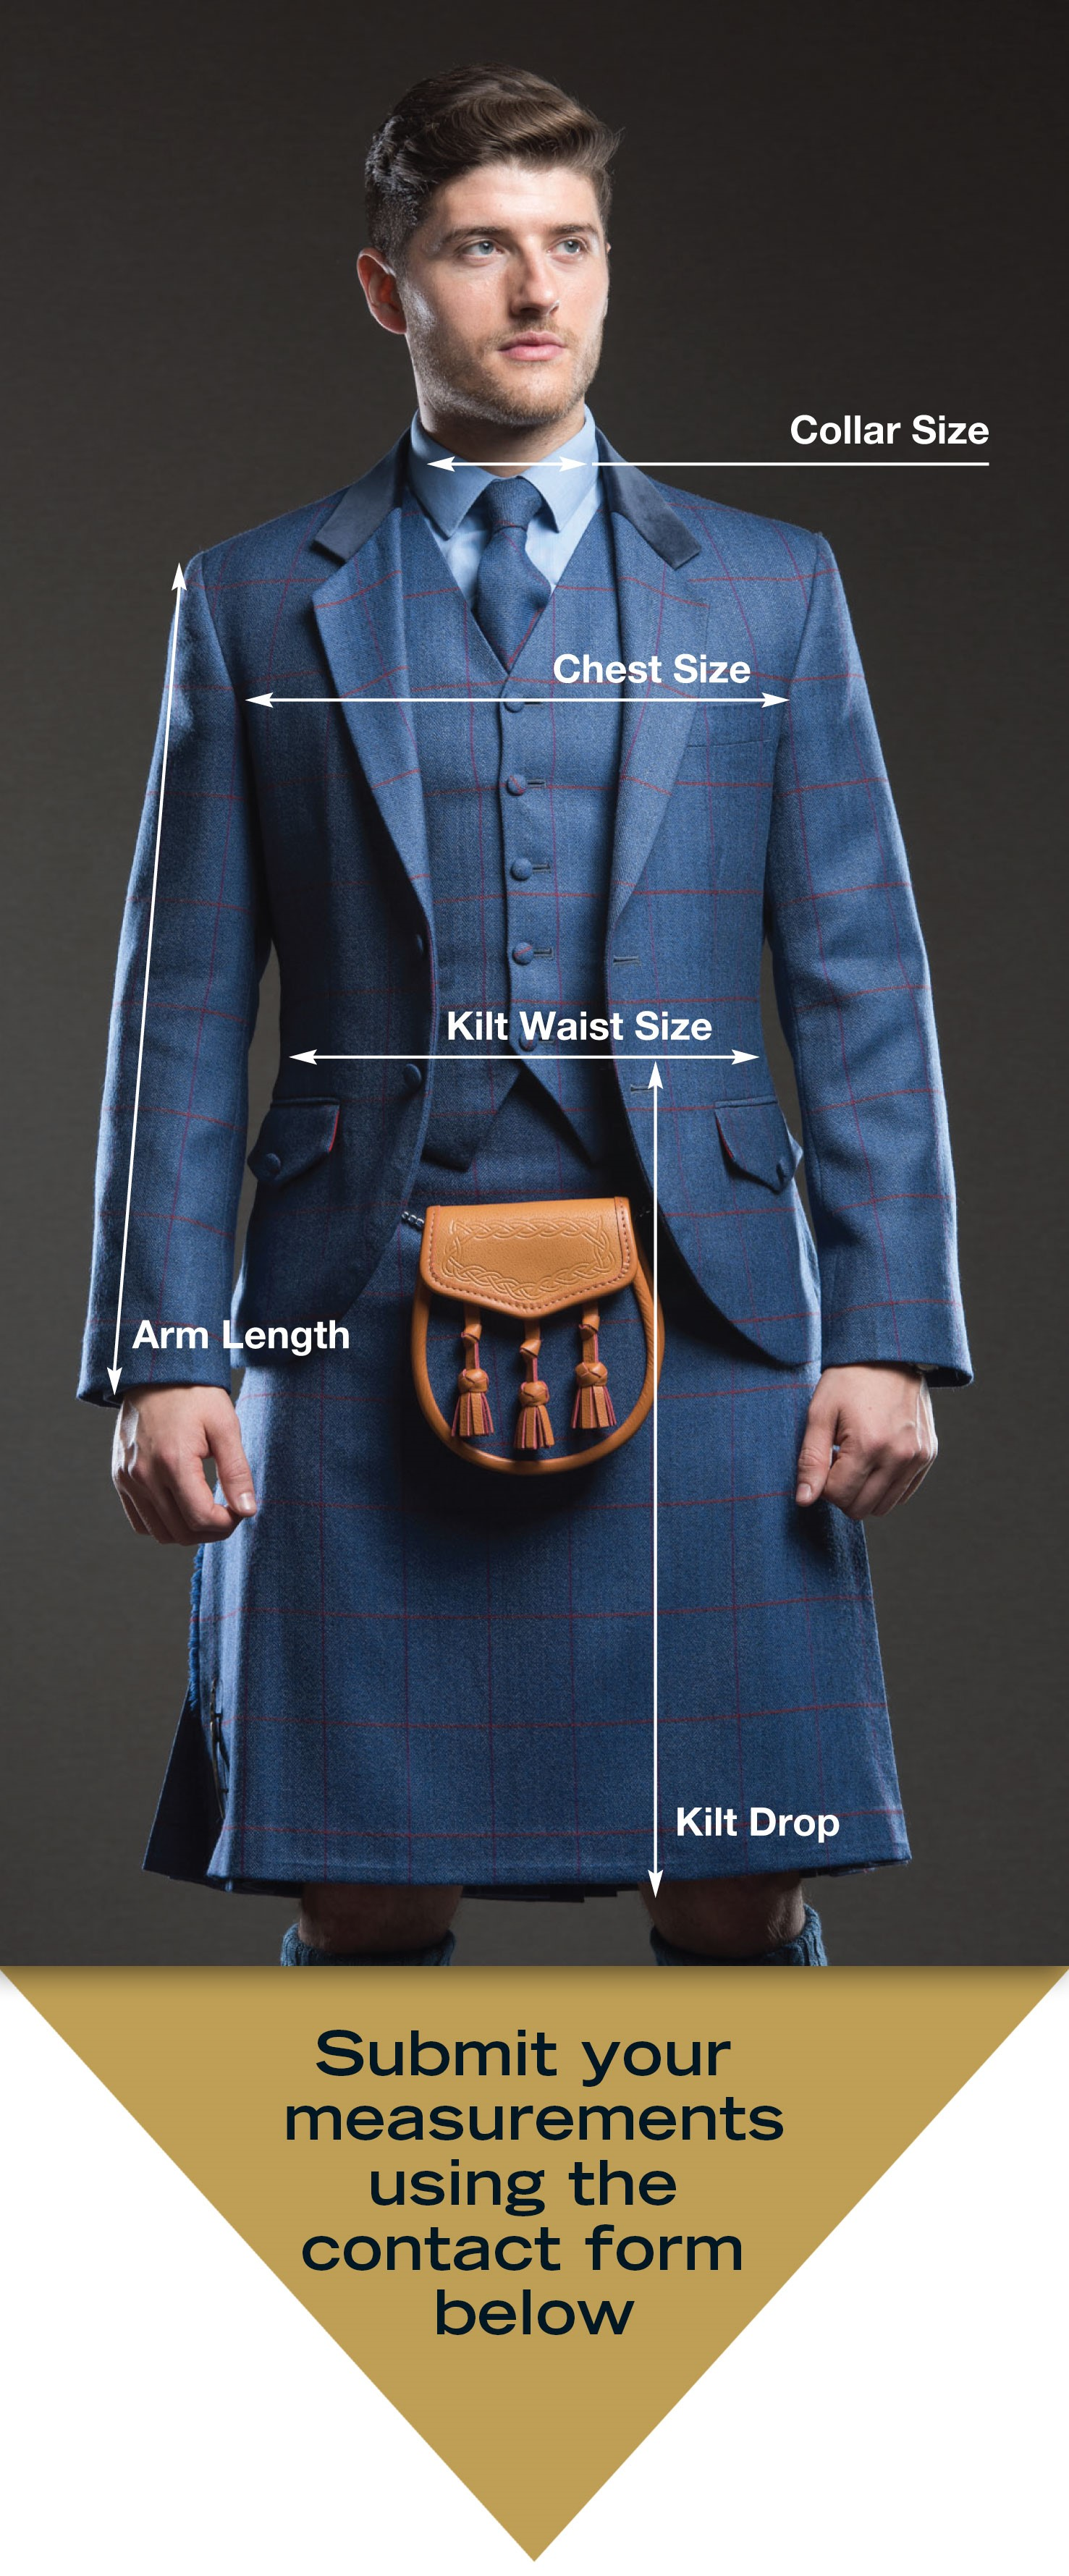 Kilt Fitting Guide